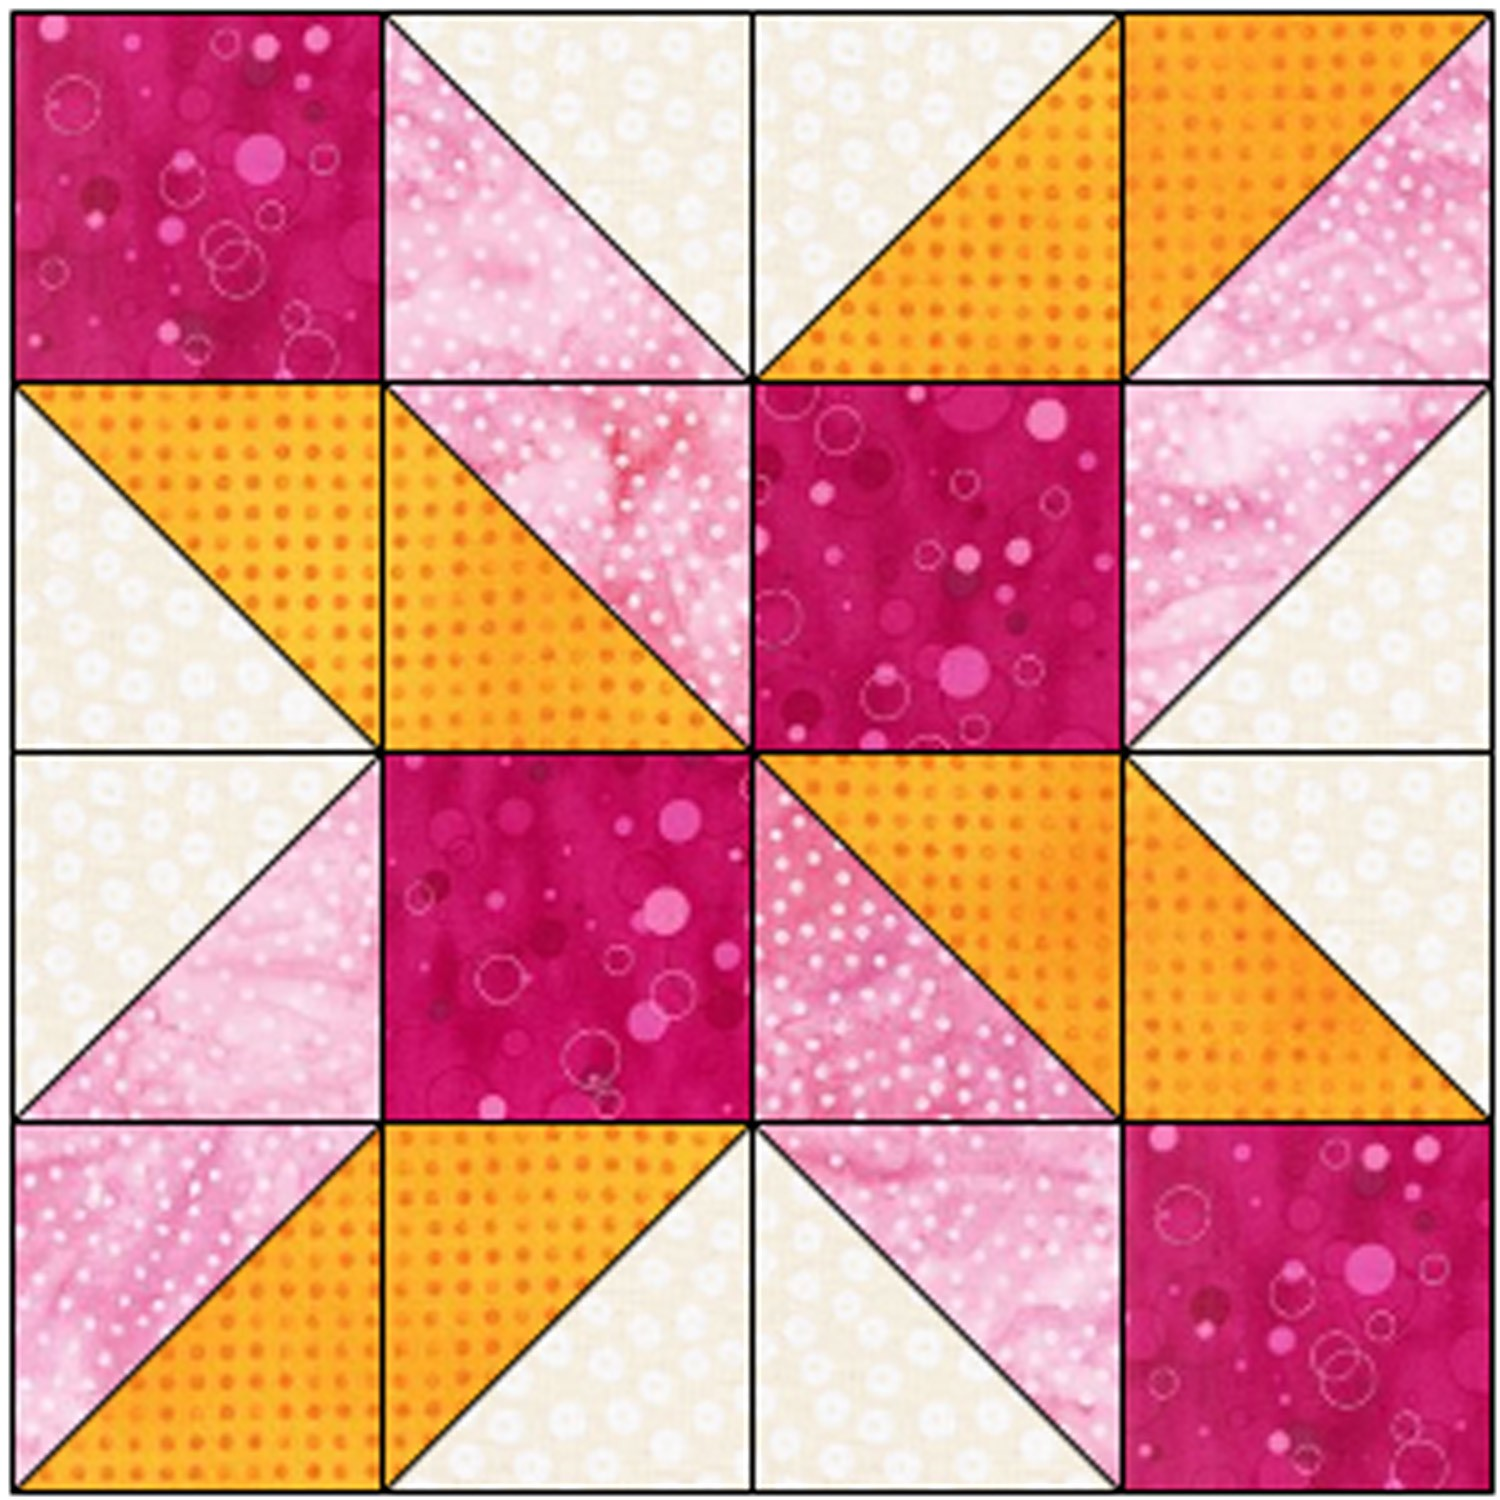 12 inch free quilt block pattern with squares and triangles